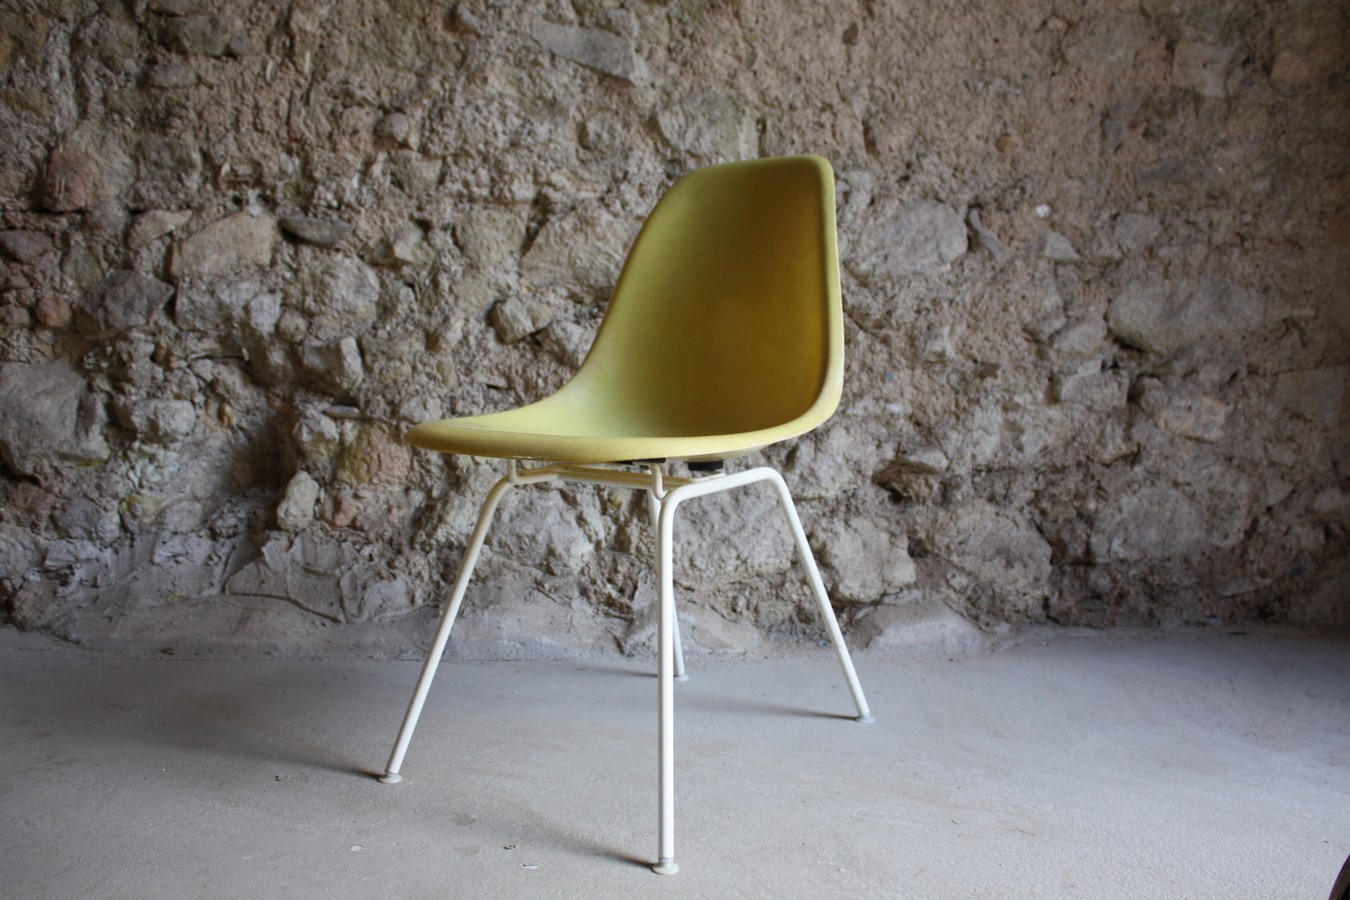 Vitra Stühle Gebraucht Stuhl Charles Eames V Herman Miller Fiberglas Canary Yellow Gelb